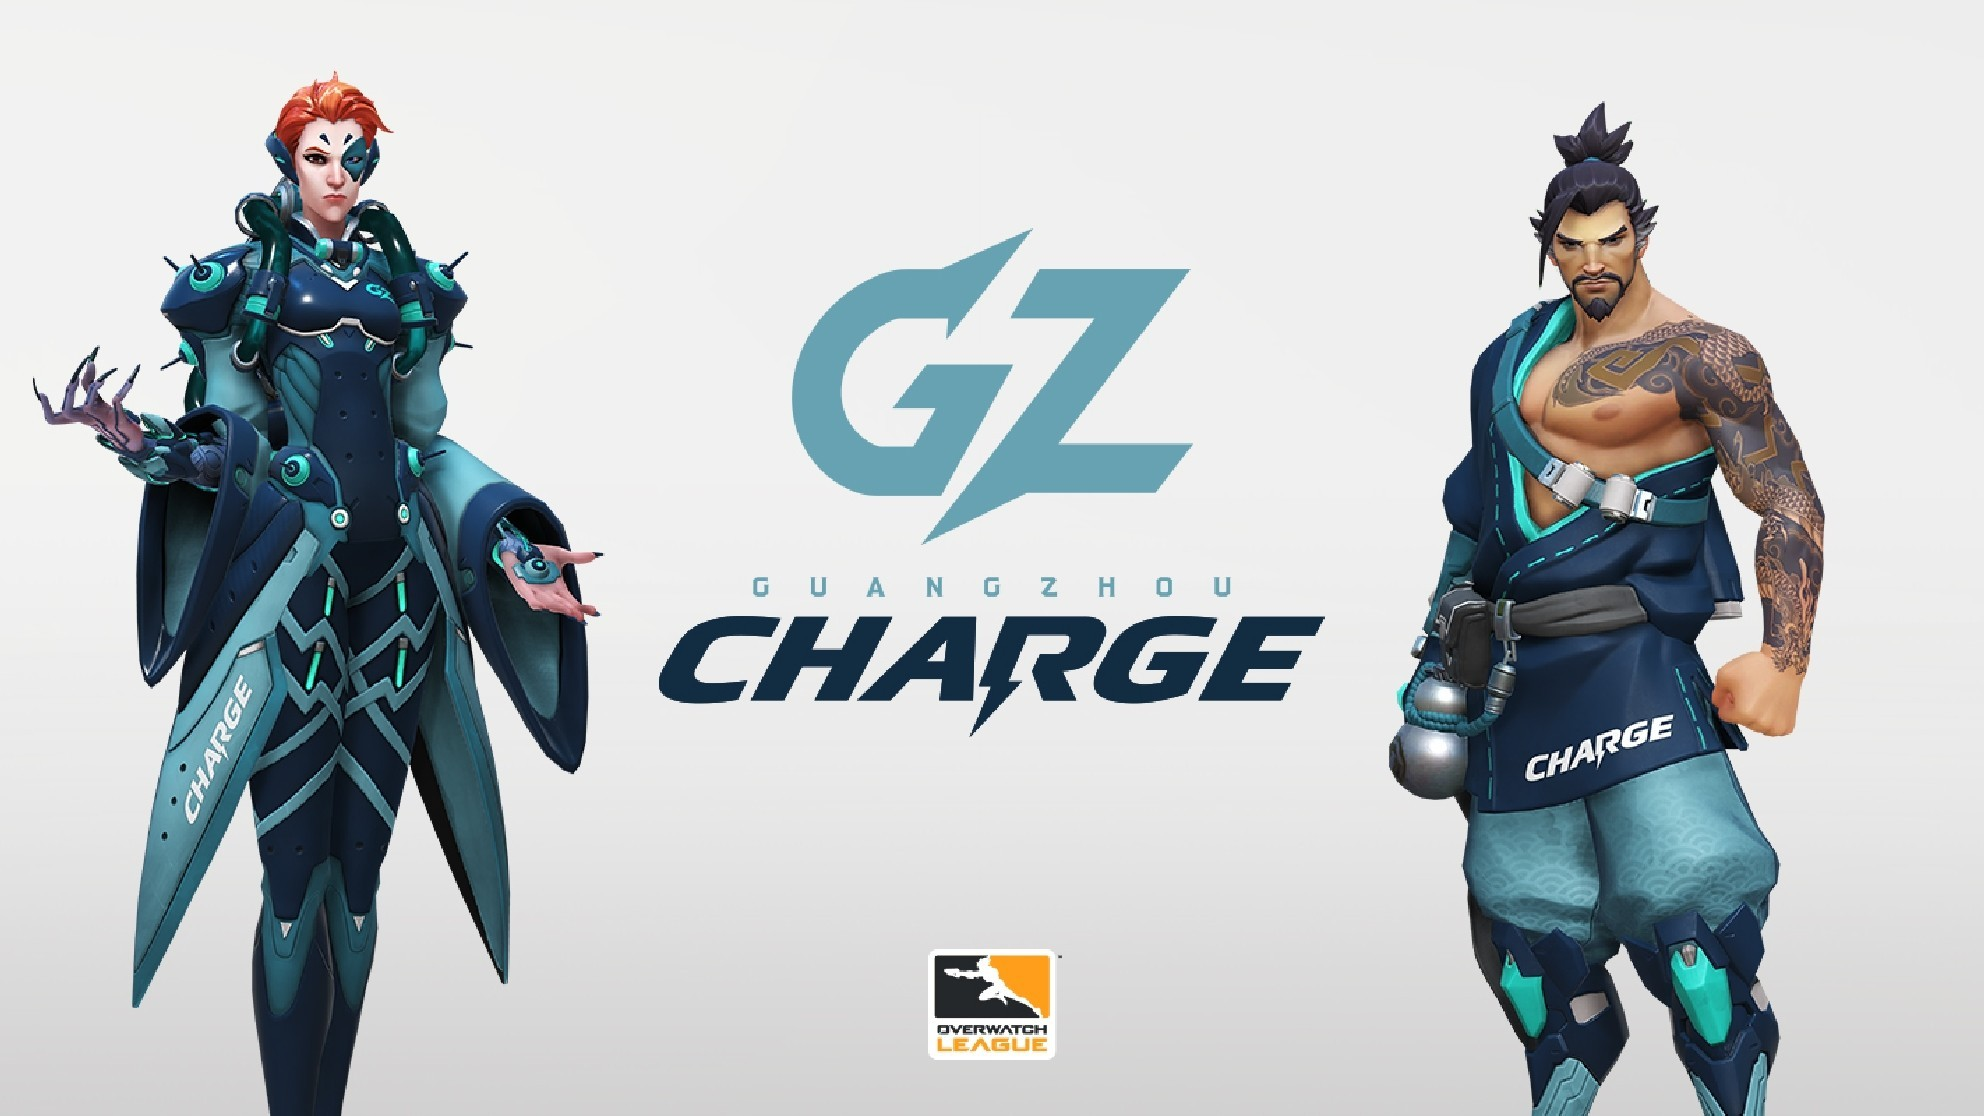 Guangzhou Charge Join the Overwatch League